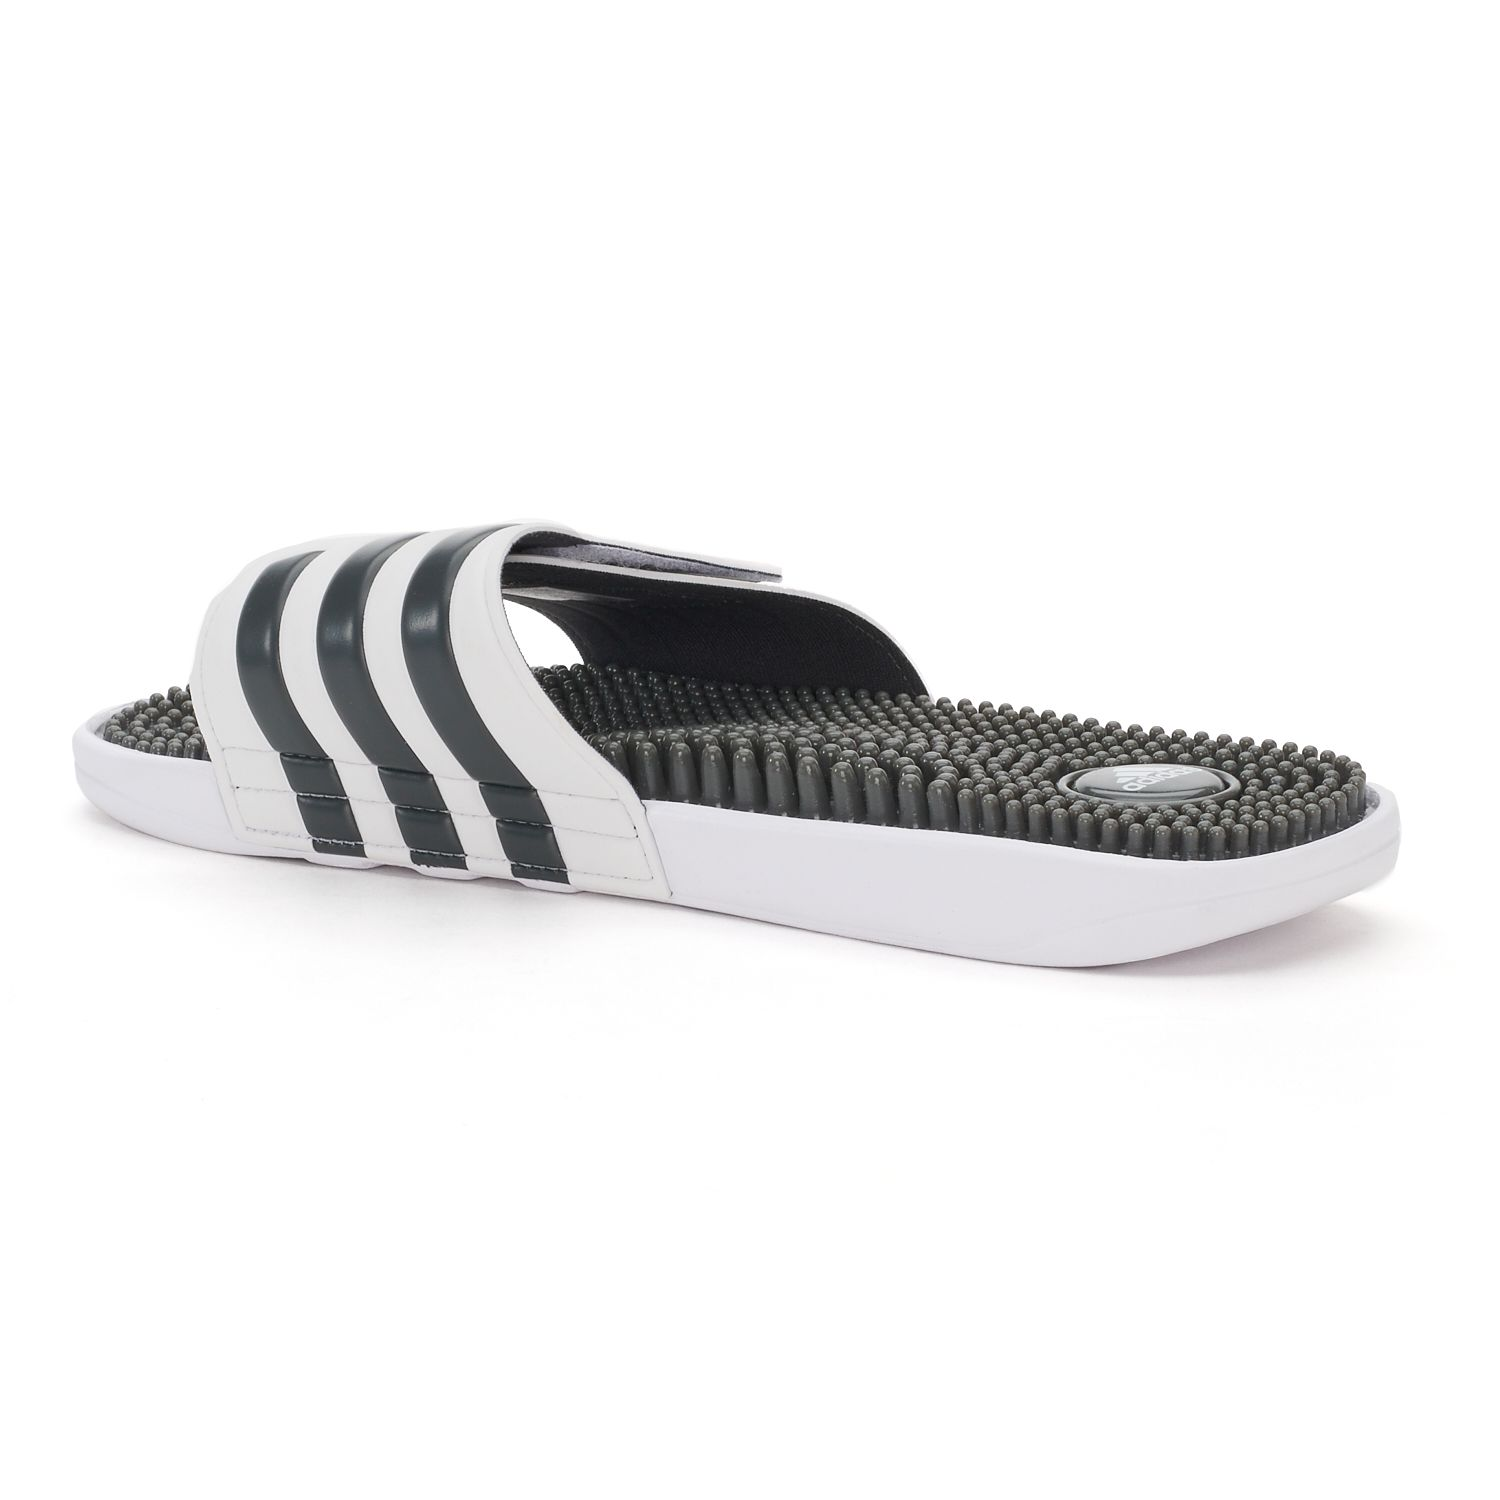 Own Blue Grey Adidas Superstar 2 Fabric Shoes